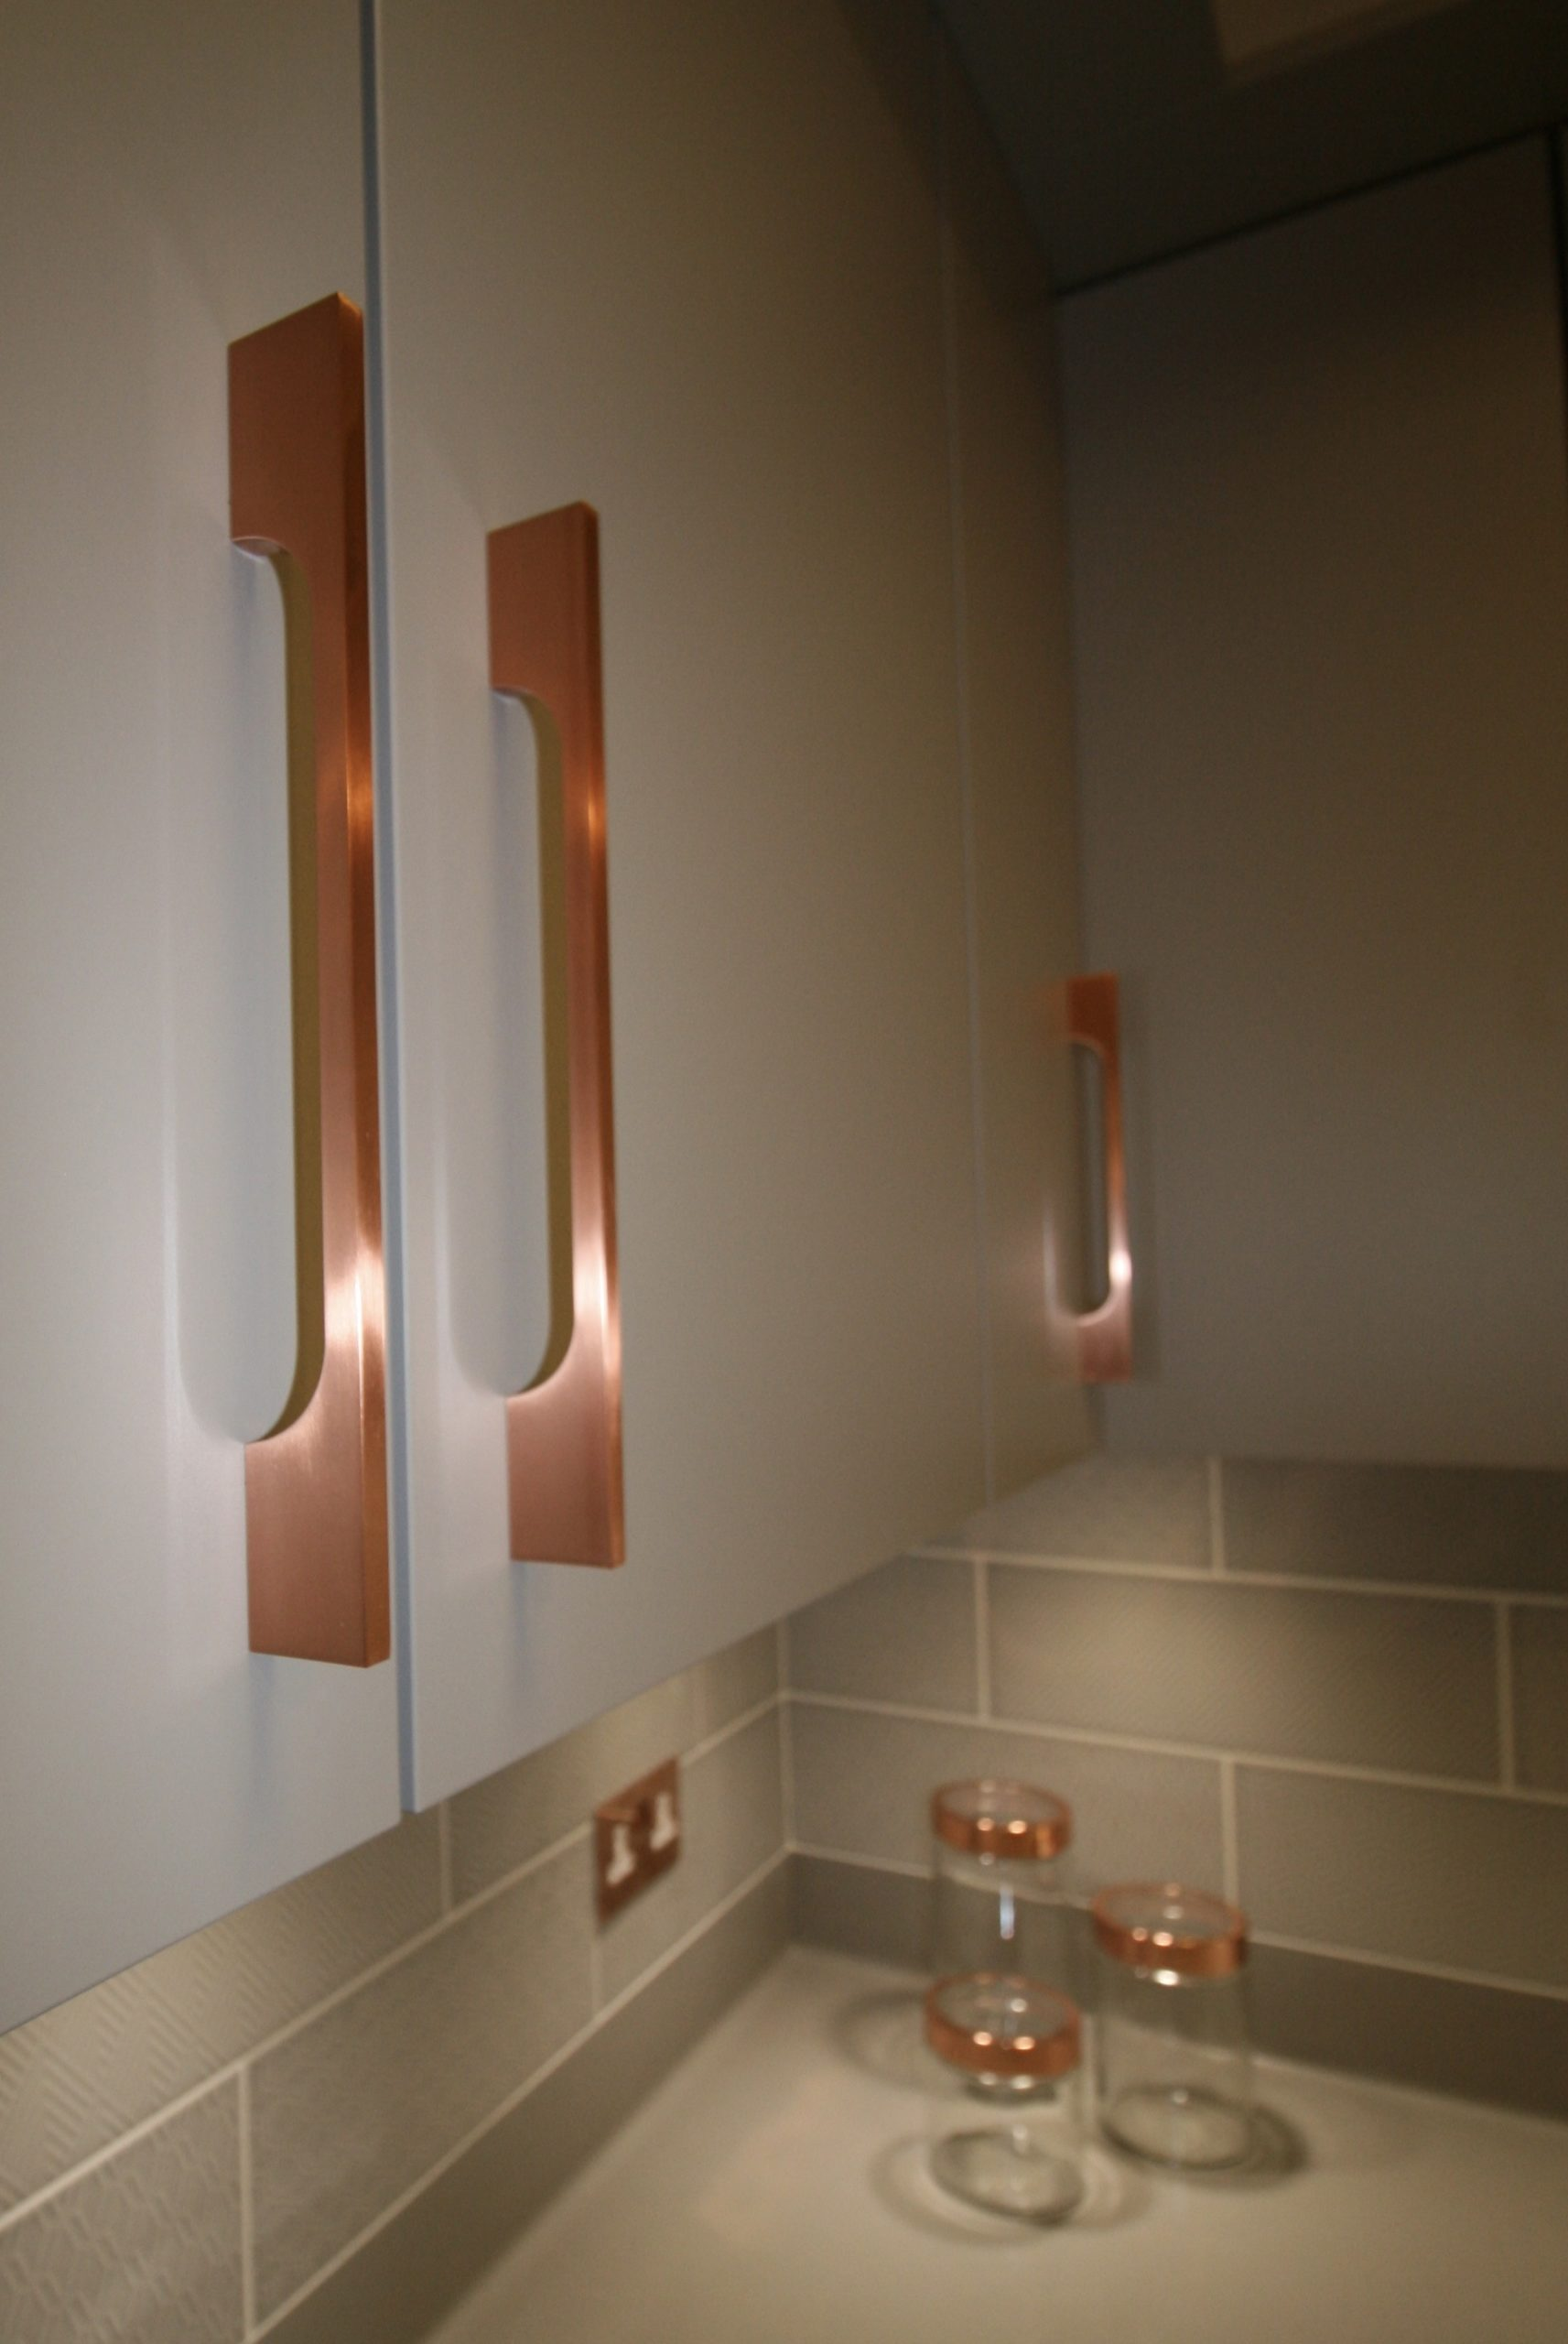 Polished copper kitchen cupboard and drawer handles